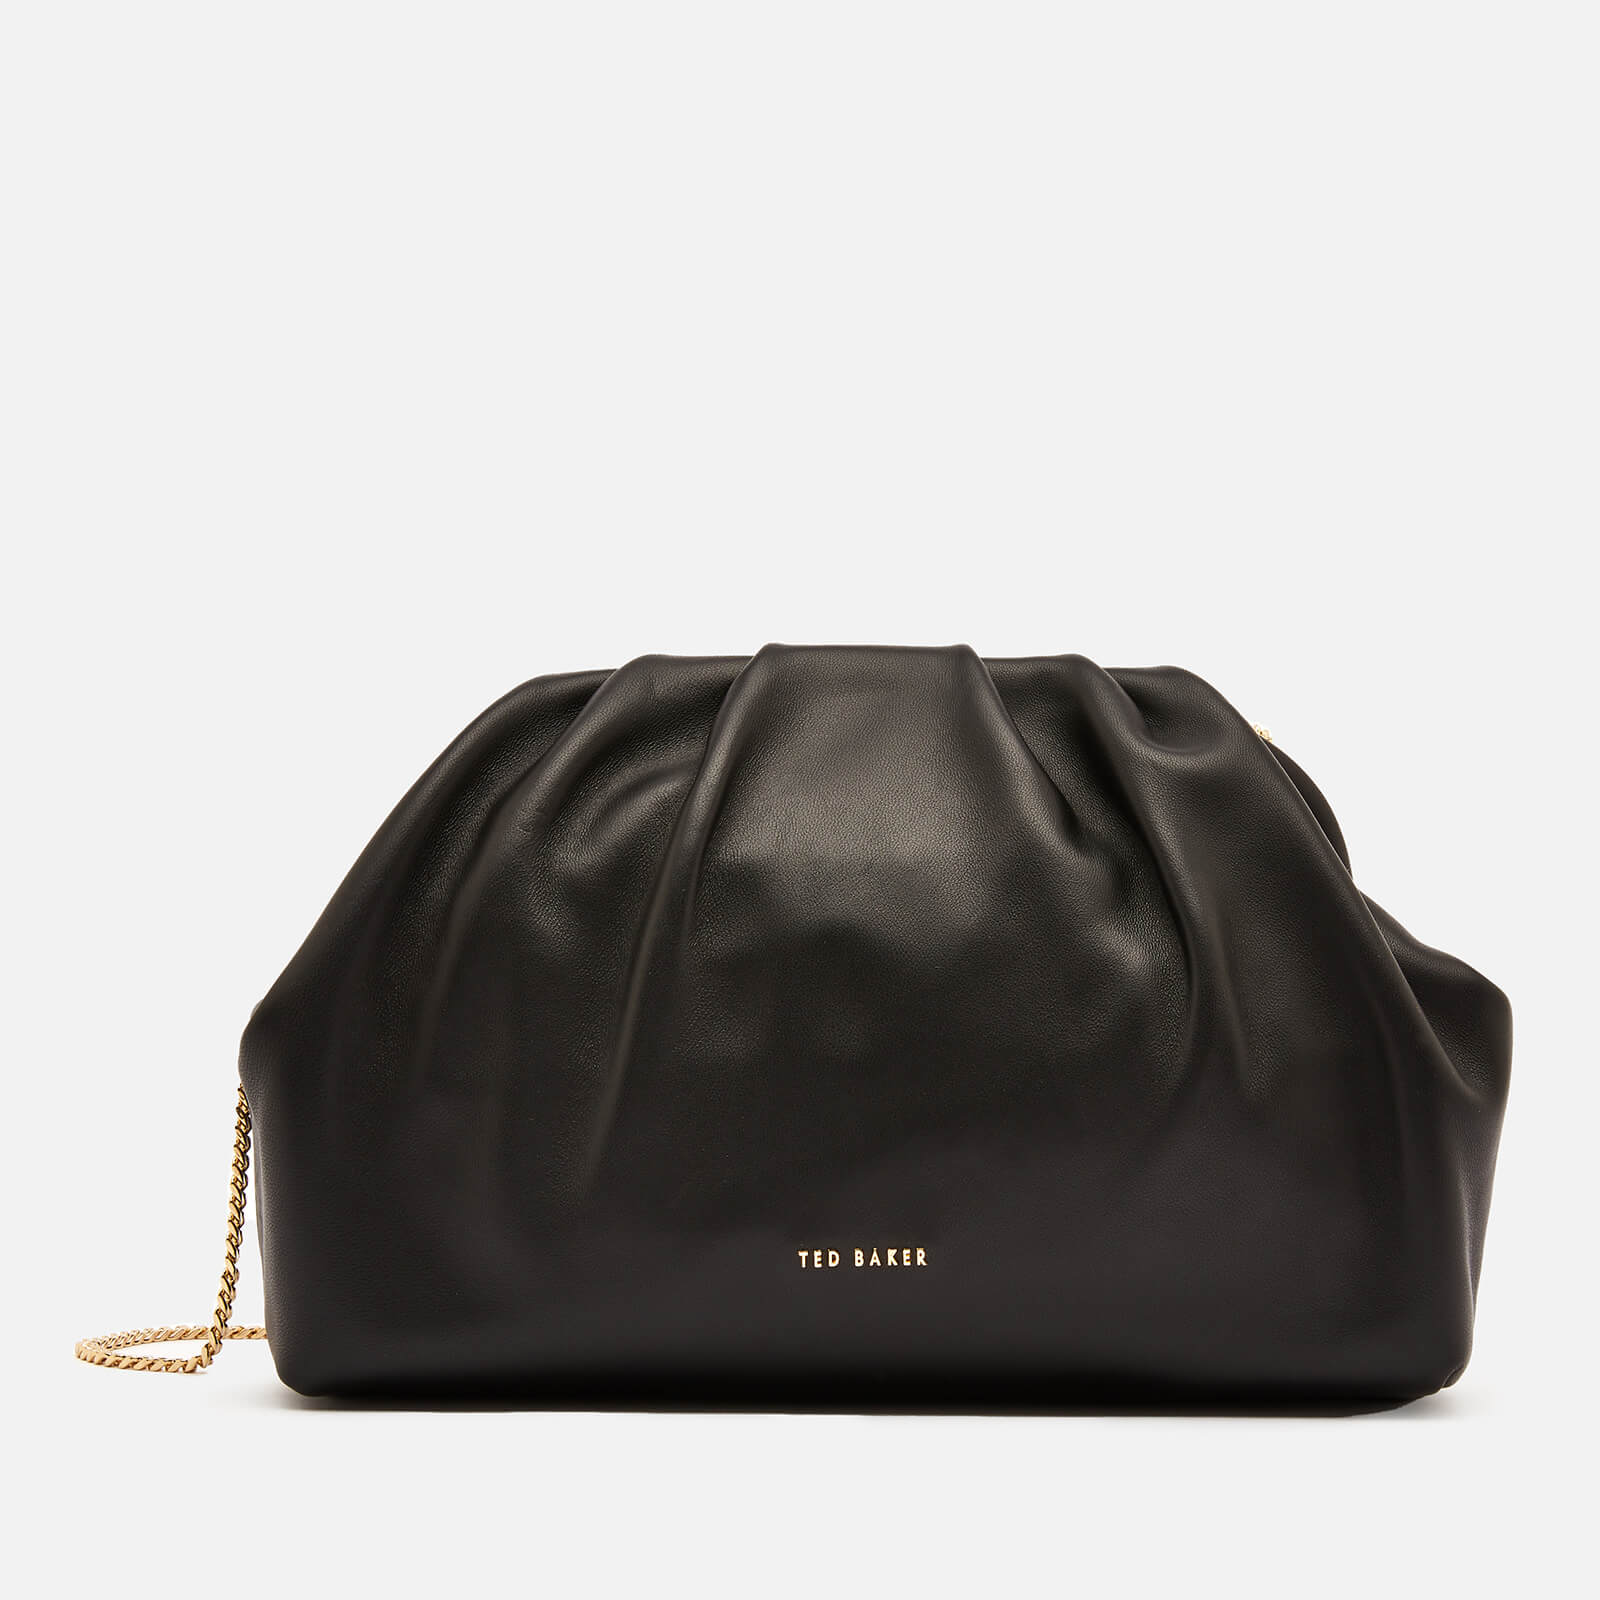 Ted Baker Women's Abyoo Gathered Leather Clutch Bag - Black